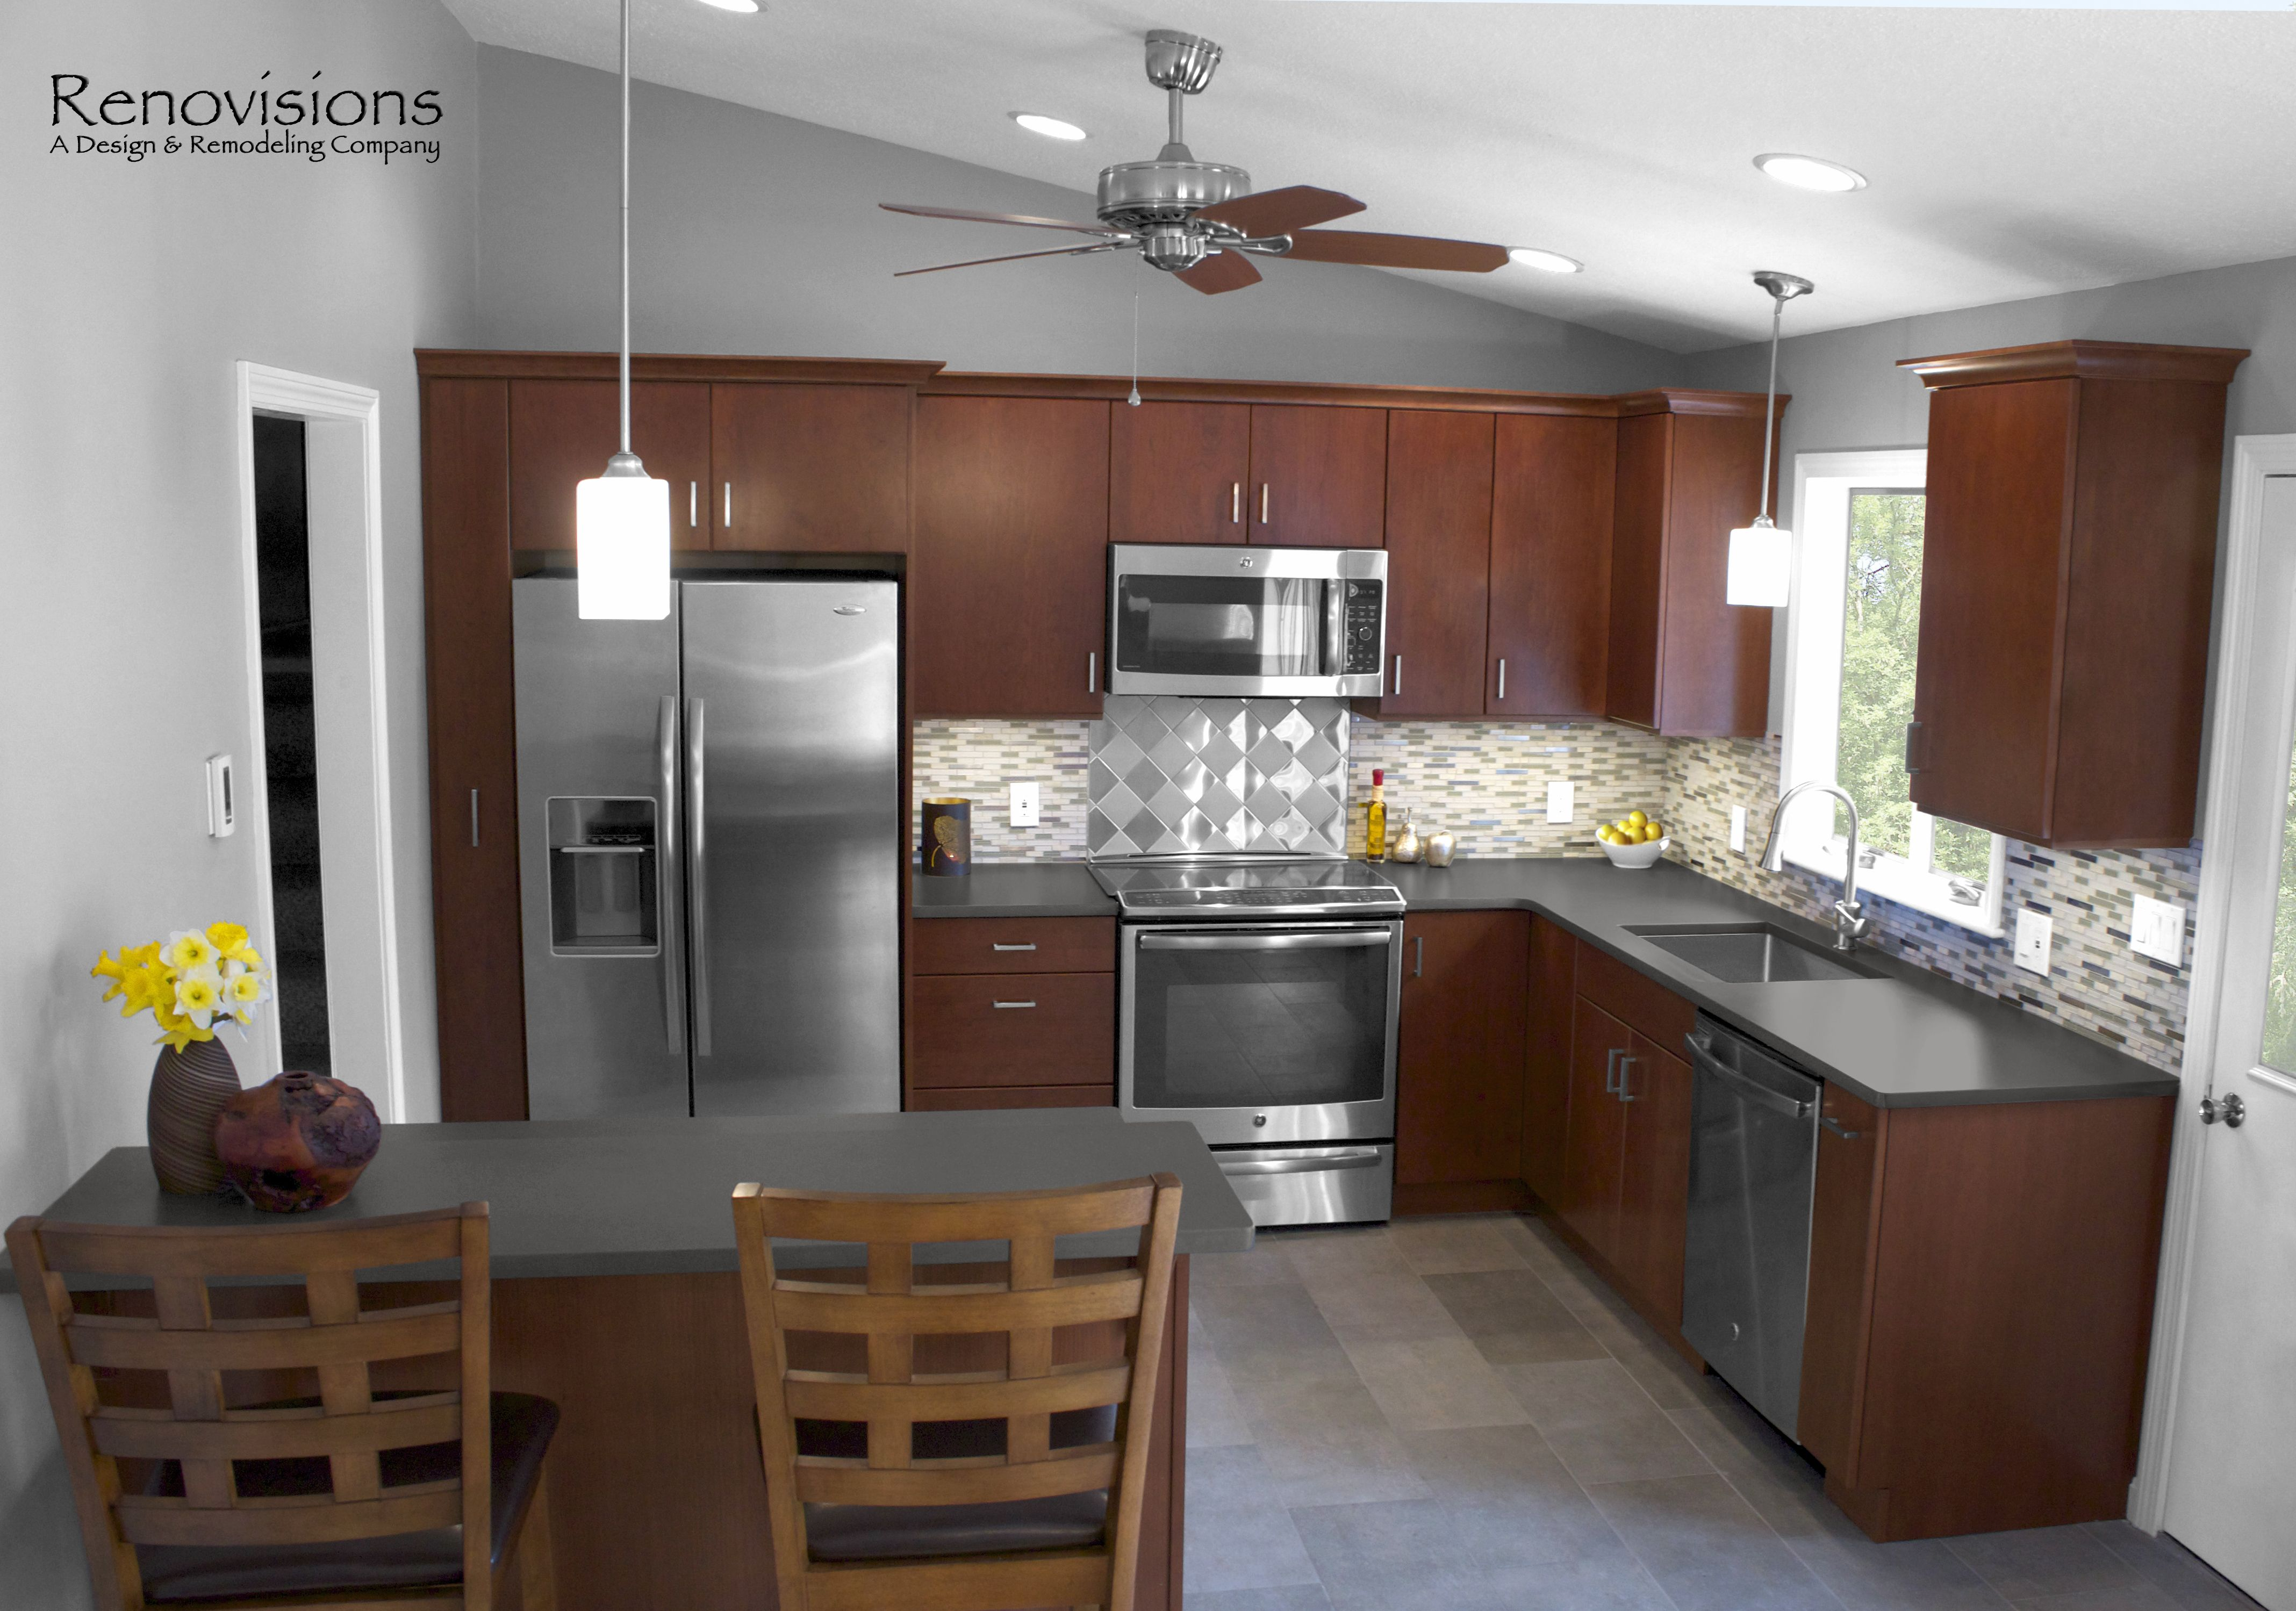 Best Contemporary Kitchen Remodel By Renovisions Stainless 400 x 300